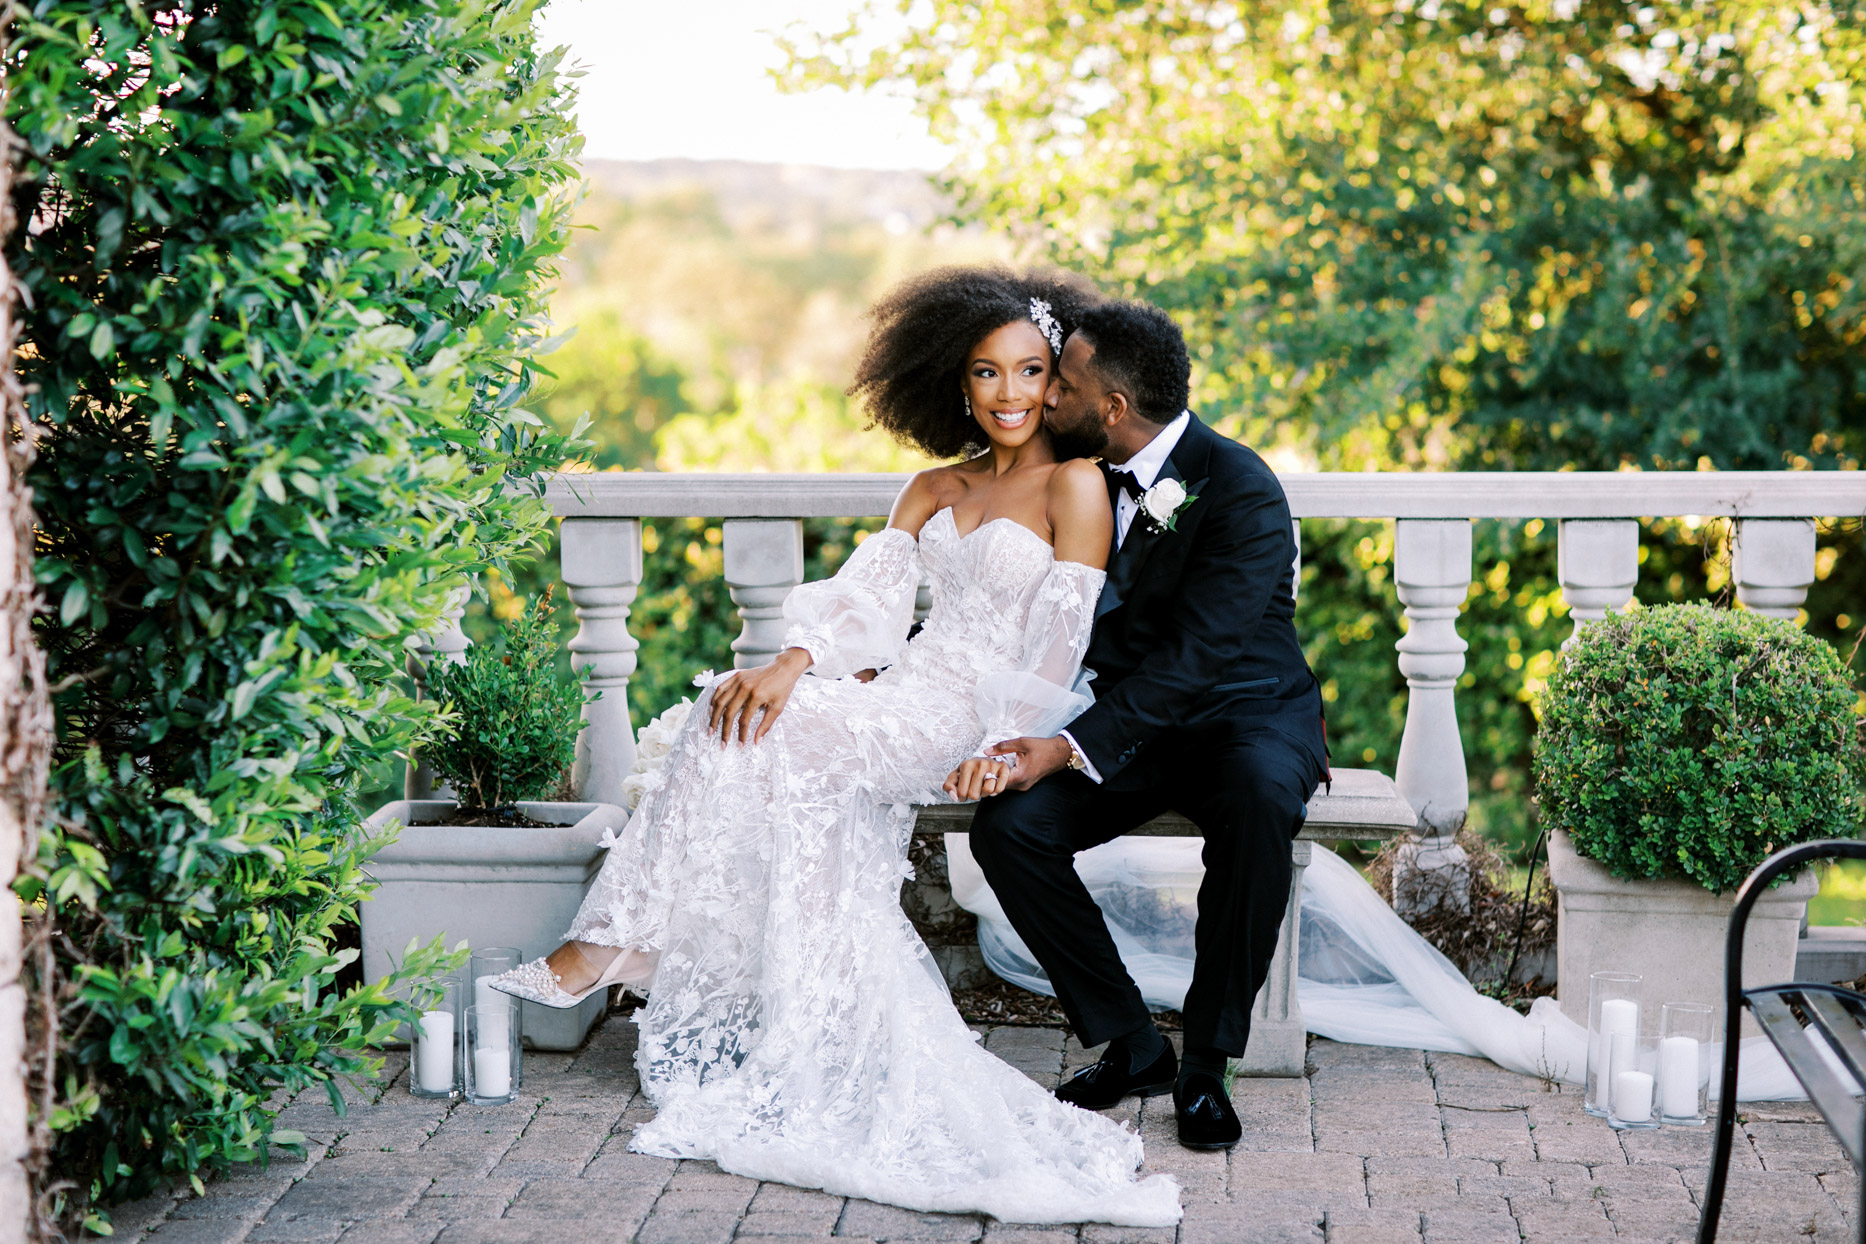 groom kisses bride on the cheek while sitting on outdoor bench